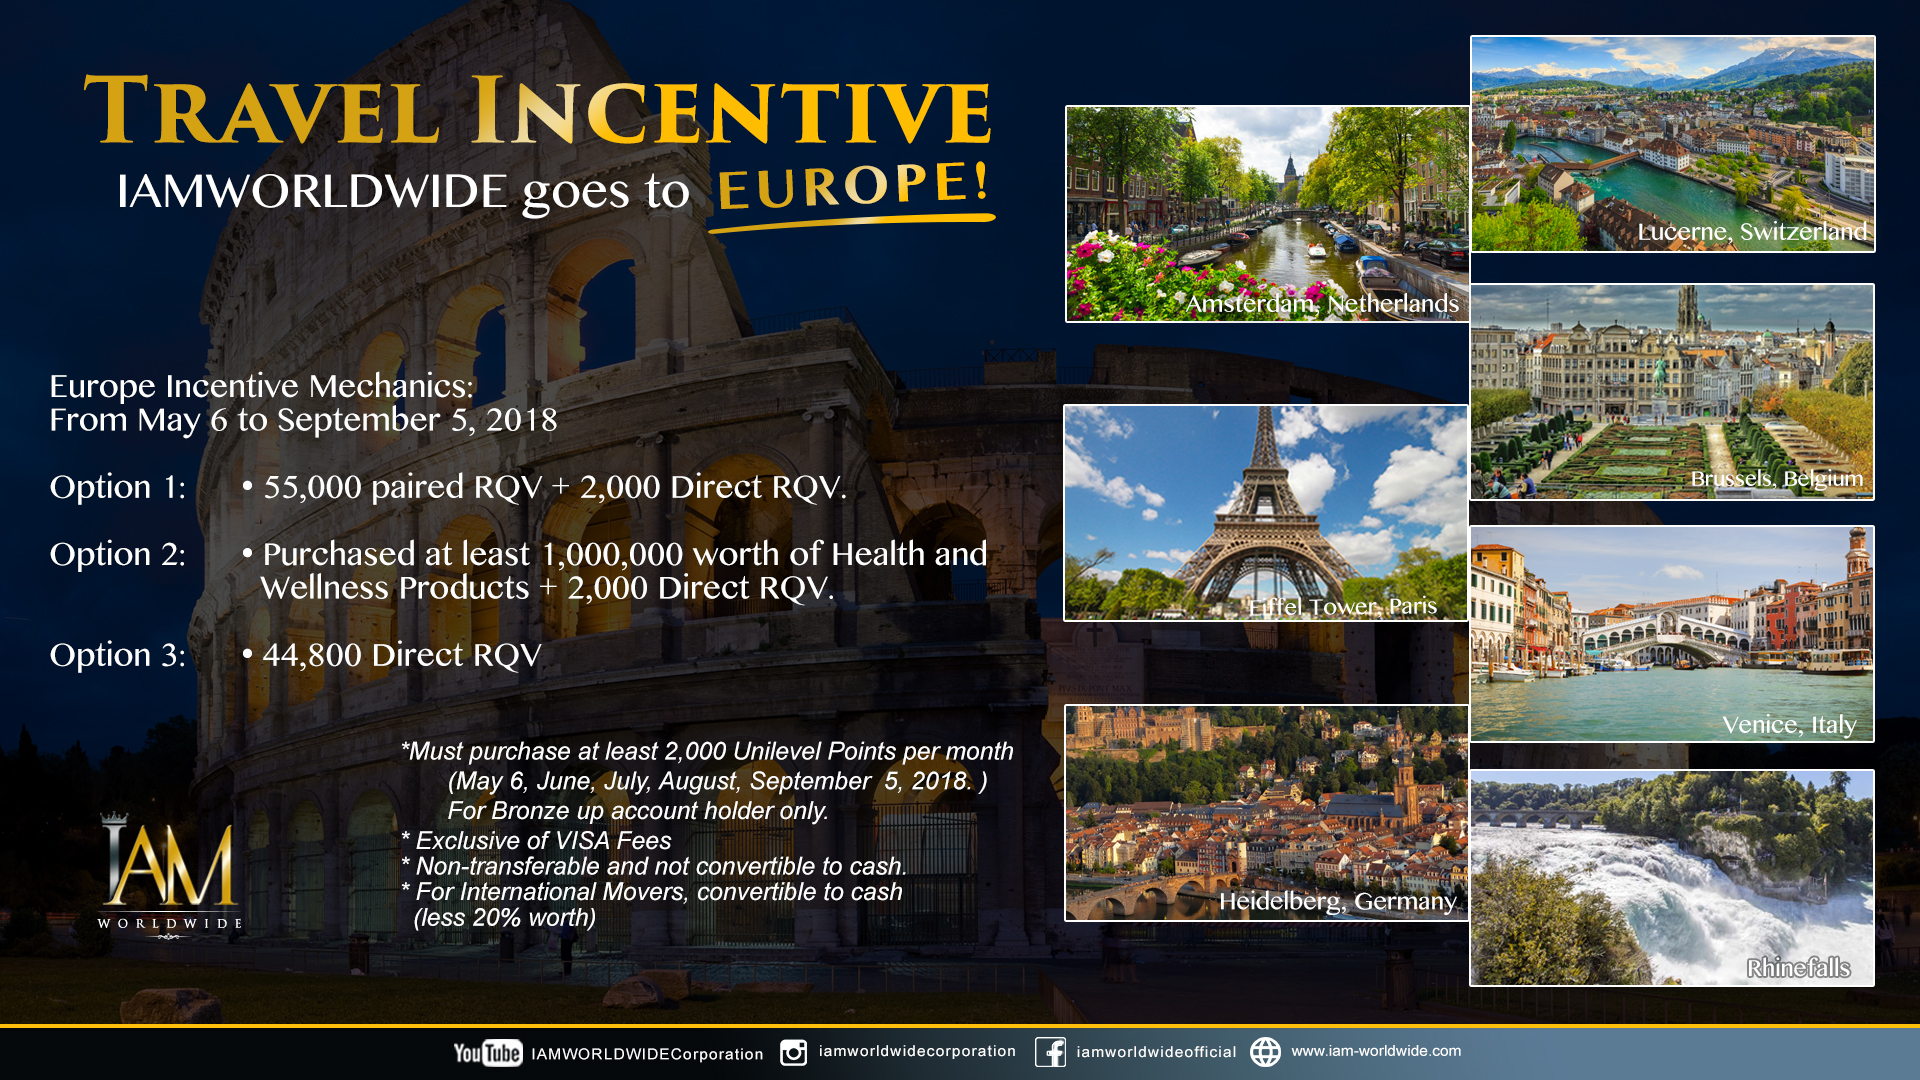 Europe Incentive